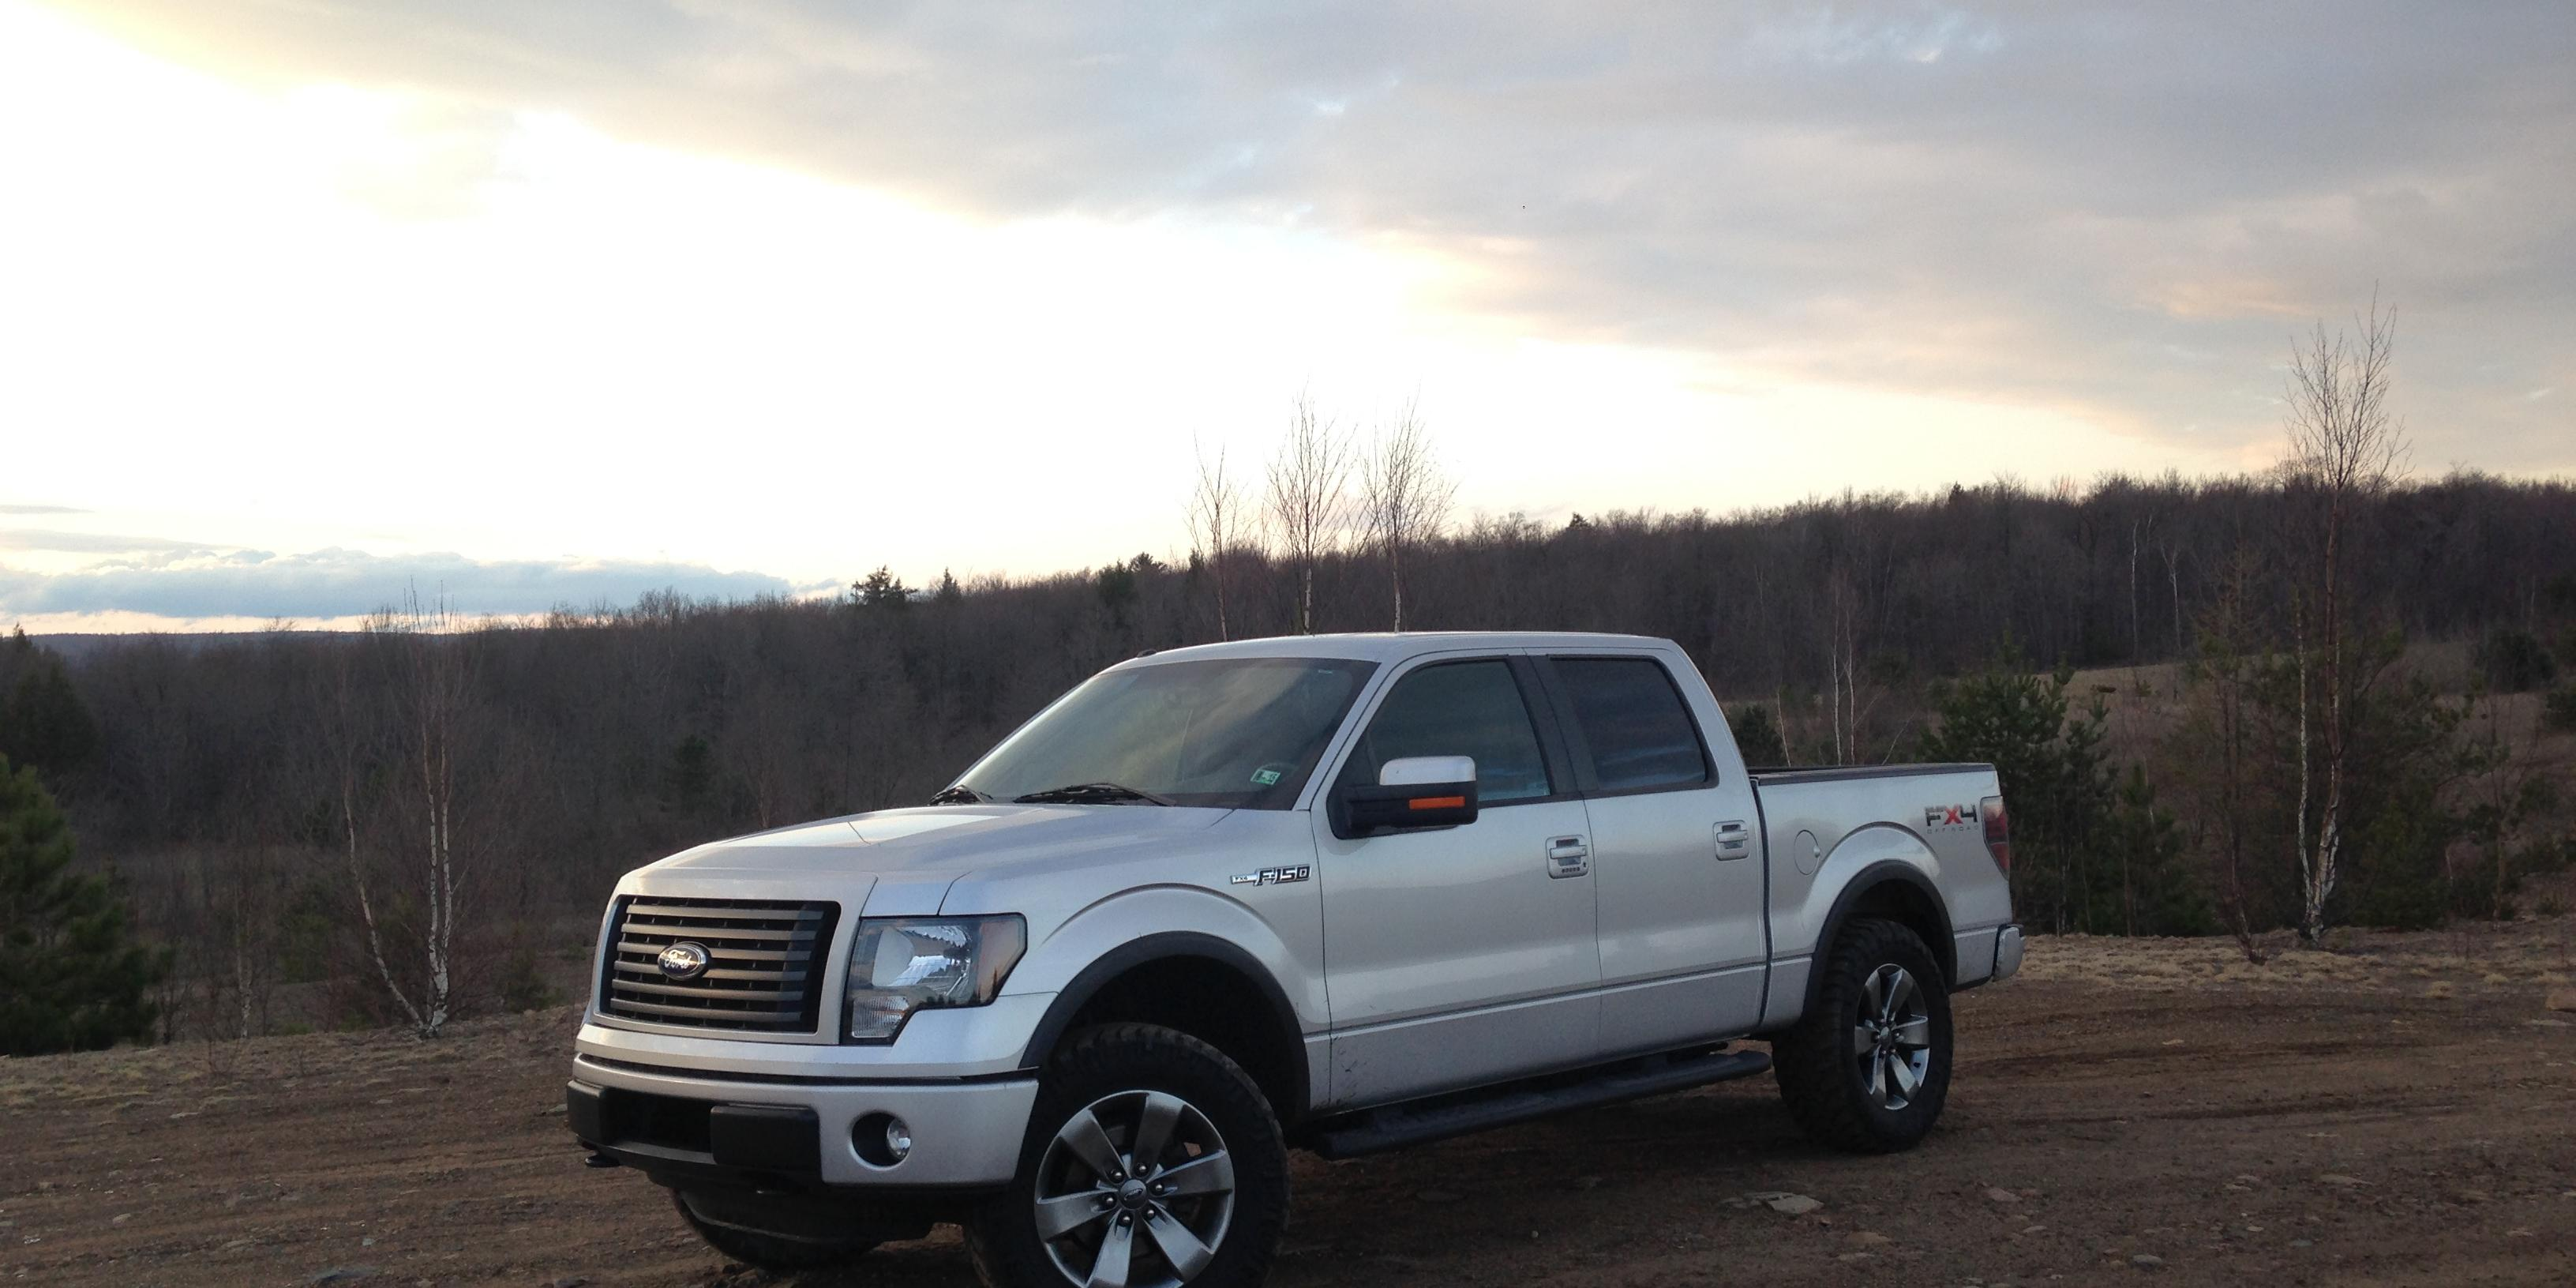 2011 Ford F150-SuperCrew-Cab